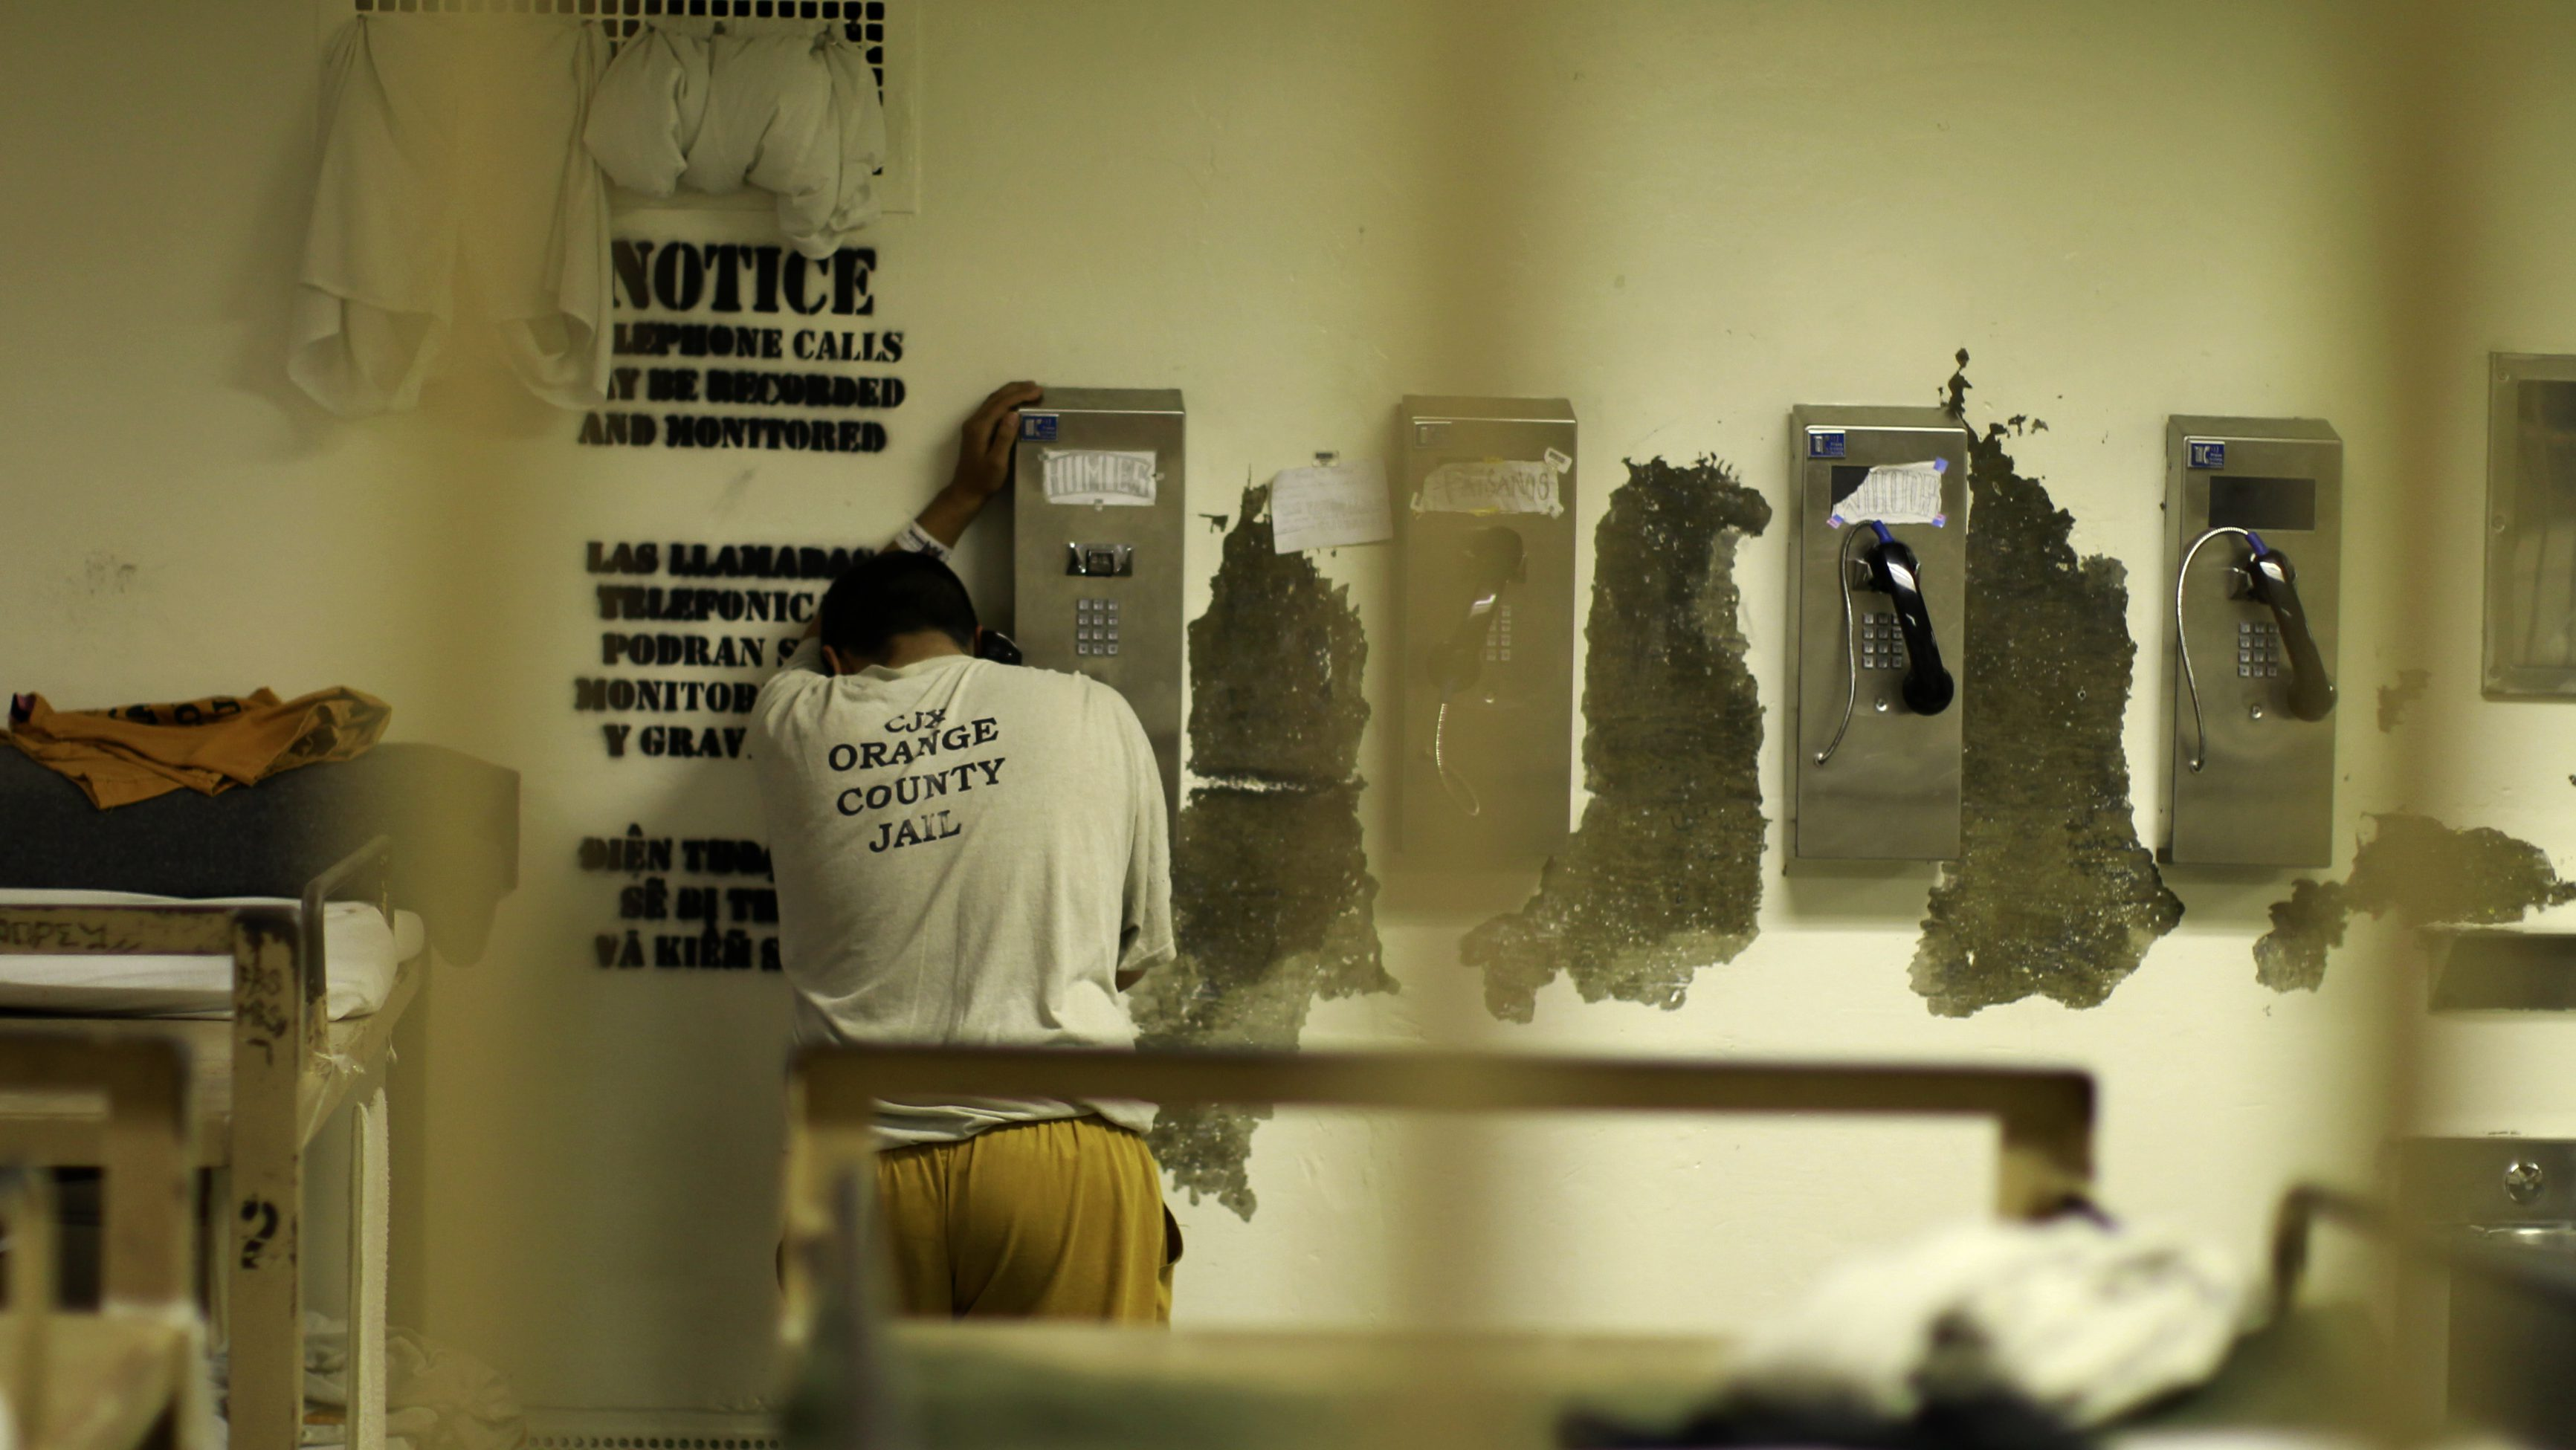 An inmate makes a phone call from his cell at the Orange County jail in Santa Ana, California, May 24, 2011. The U.S. Supreme Court upheld on Monday an order that California reduce its overcrowded prisons by some 40,000 inmates to fix longtime problems with inadequate medical and mental health care. Officials plan to move low-level offenders to county jails.  REUTERS/Lucy Nicholson (UNITED STATES - Tags: SOCIETY CRIME LAW IMAGES OF THE DAY) - RTR2MUOG